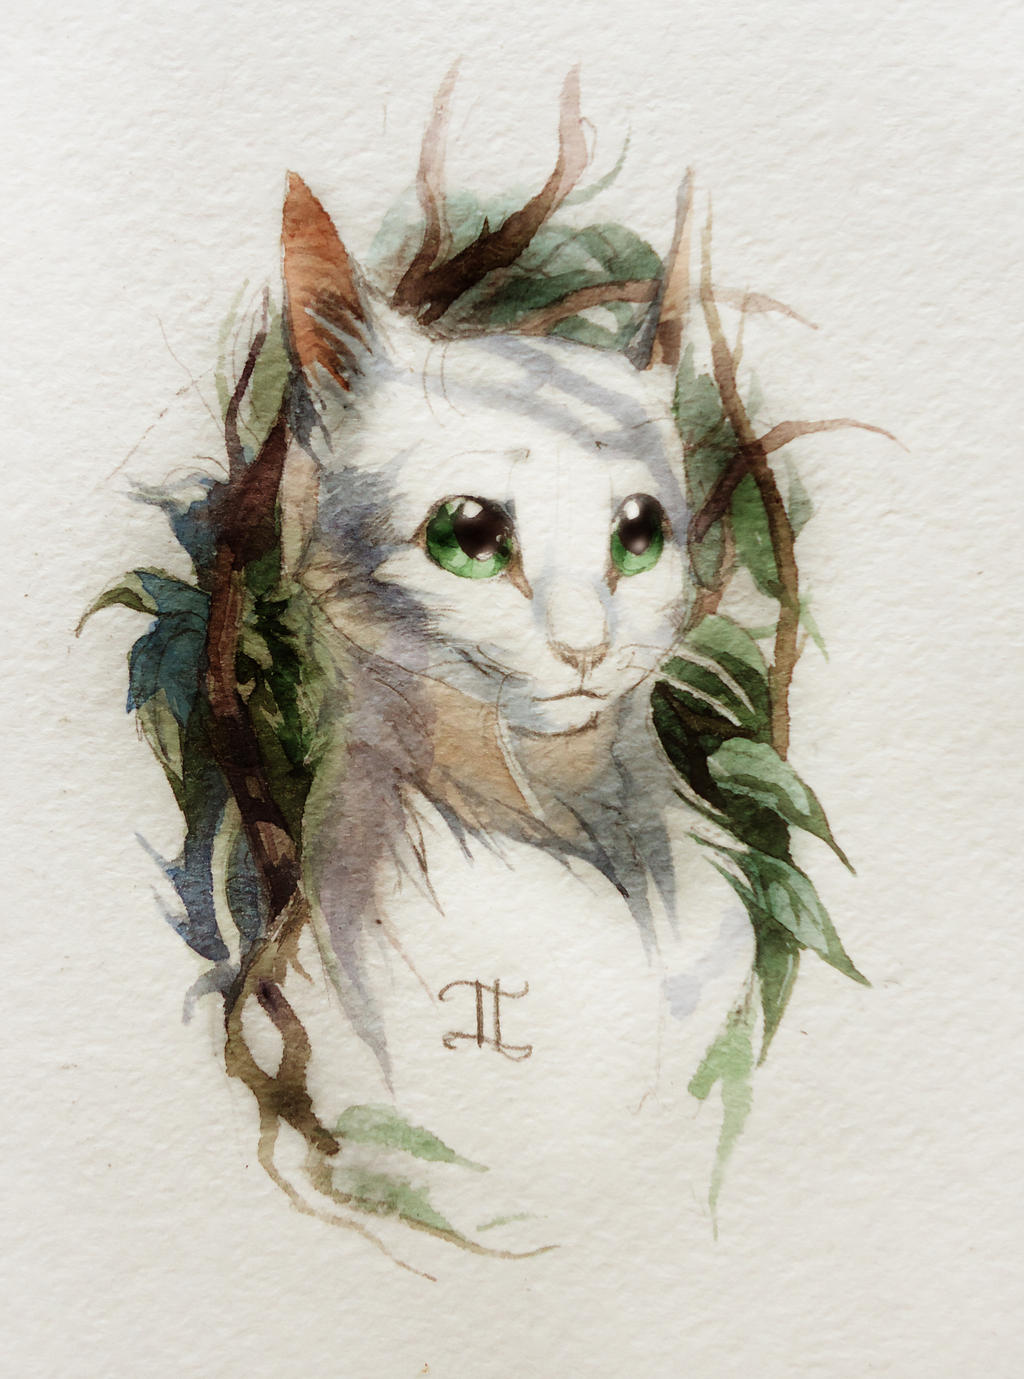 Greenstar's portrait by Flame-of-inspiration